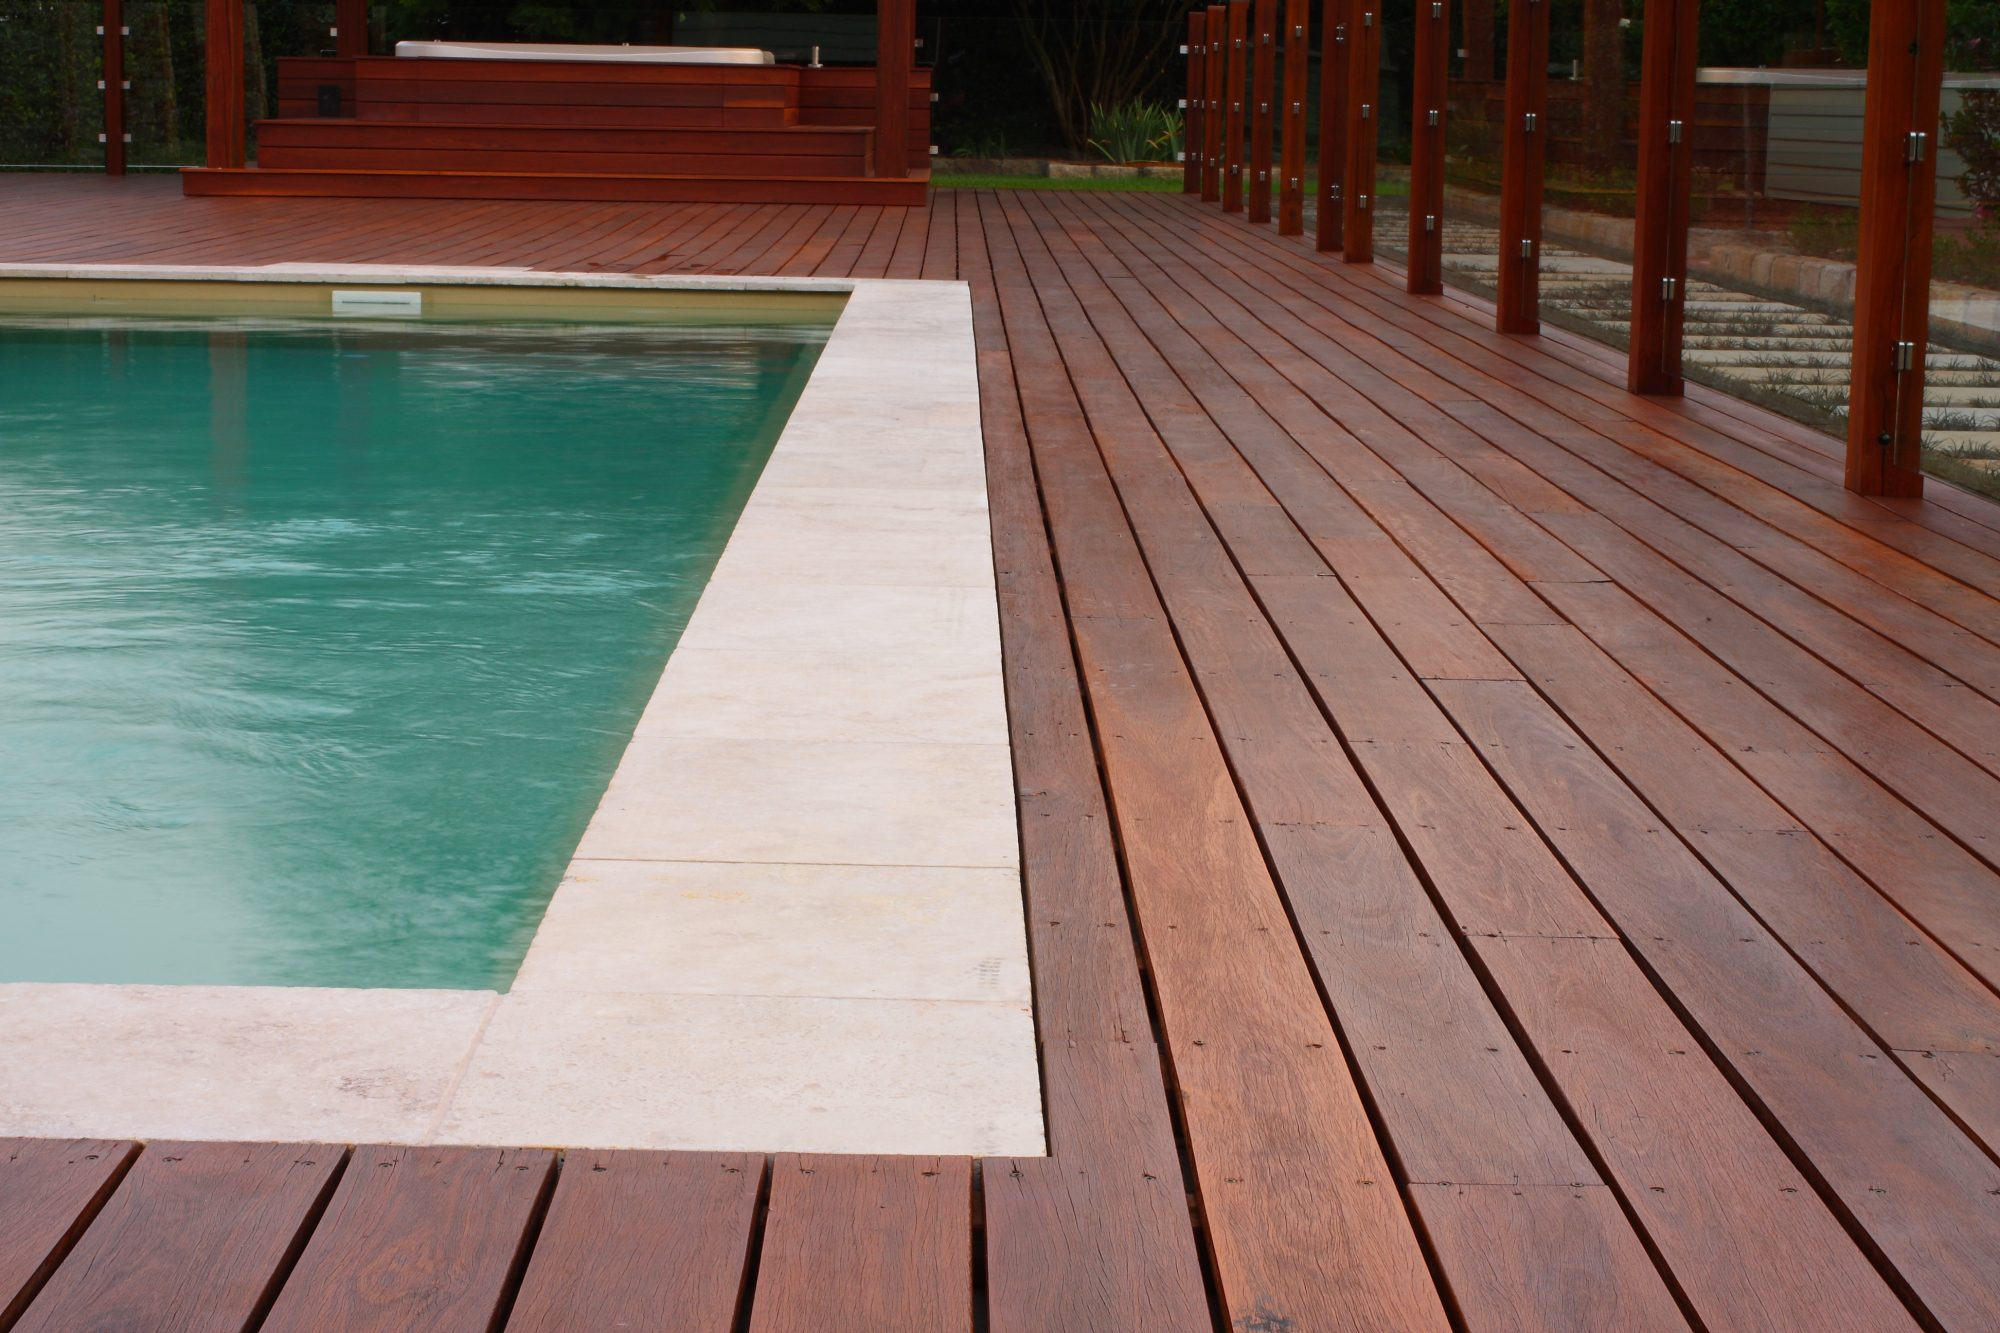 Sikkens slip resistant coated decking around the pool